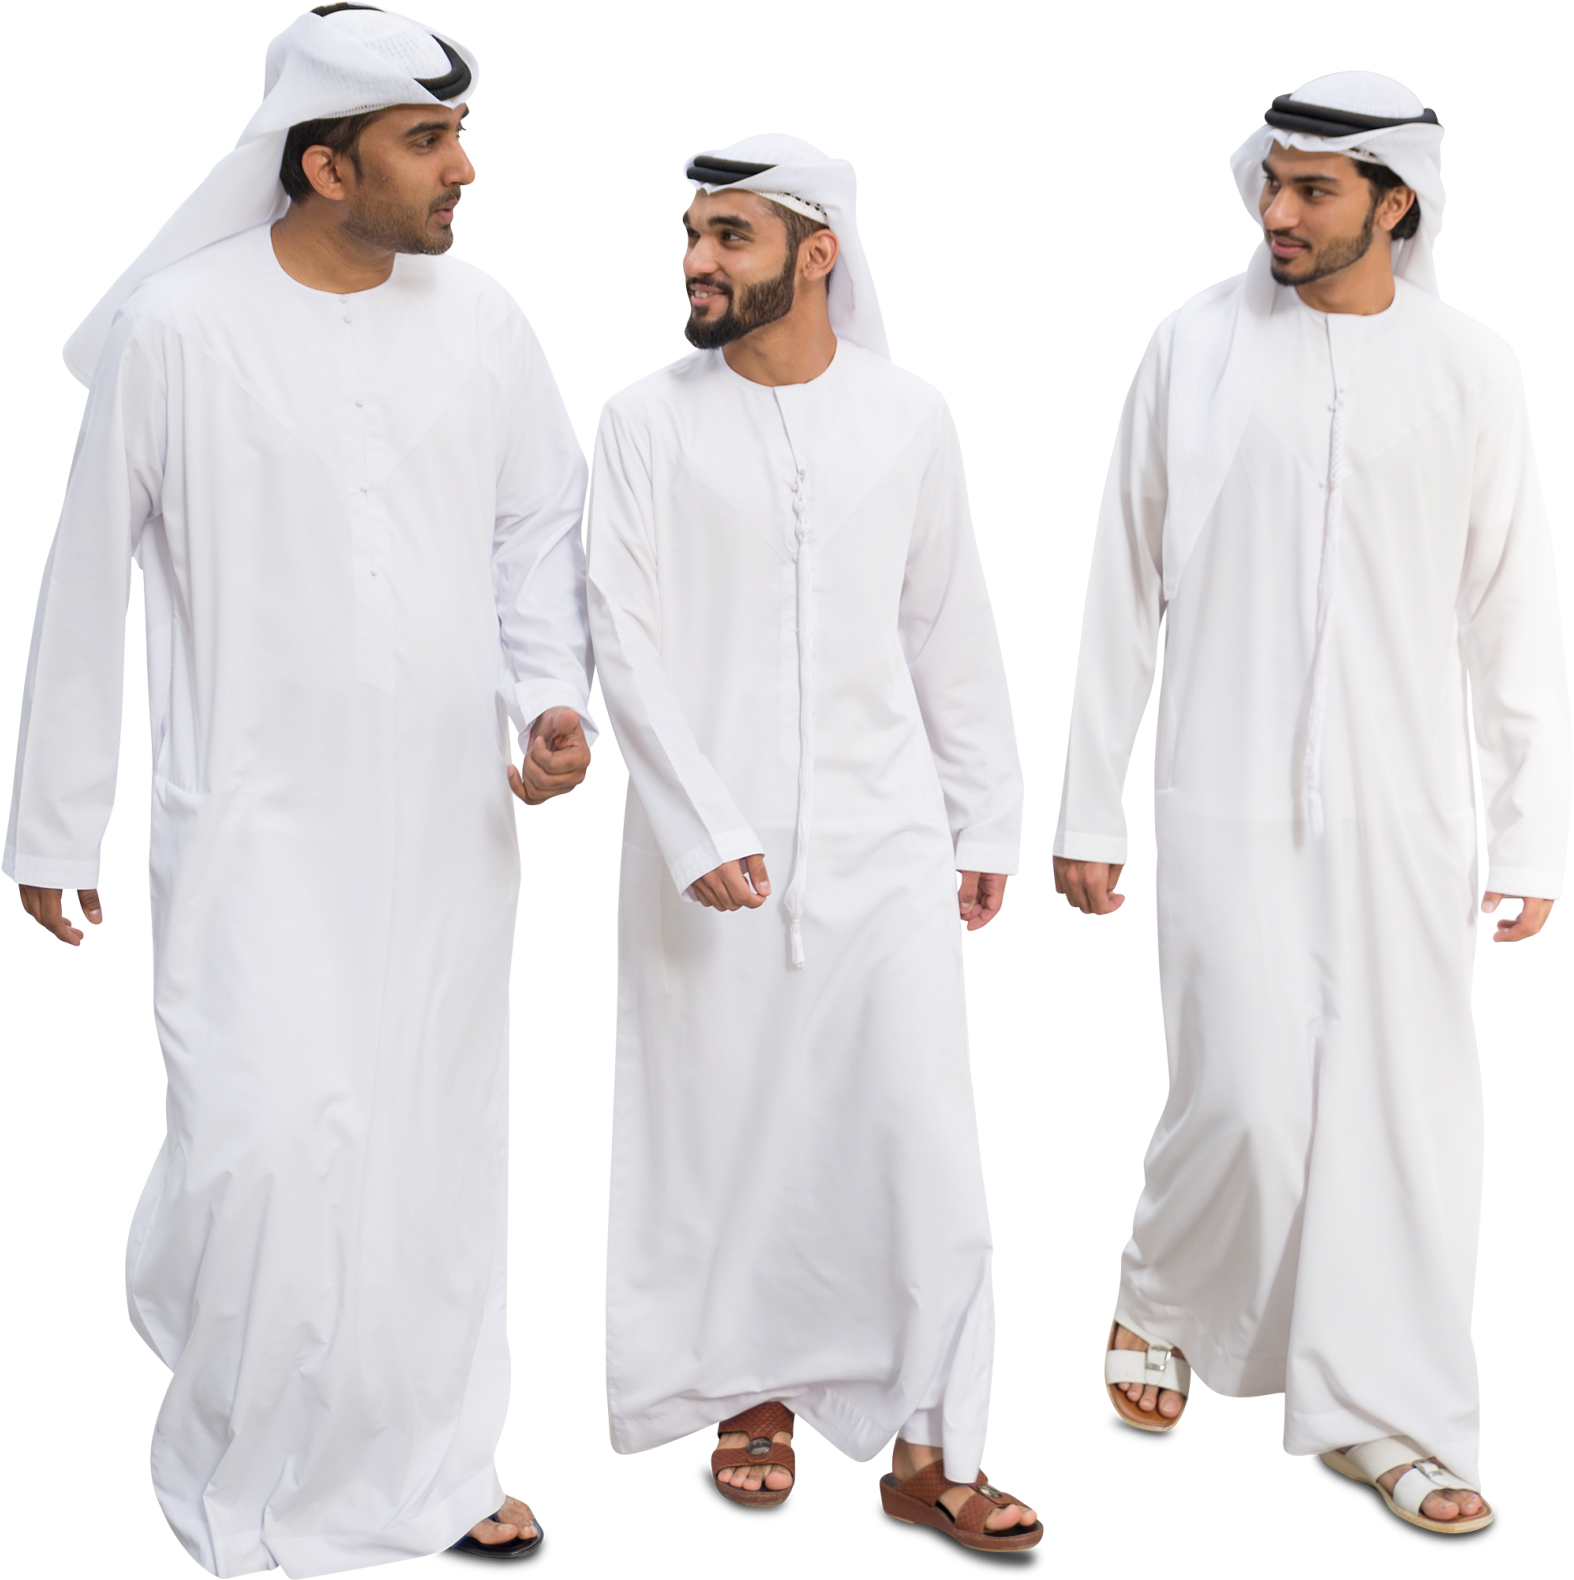 Arab People Png & Free Arab People.png Transparent Images #25458.